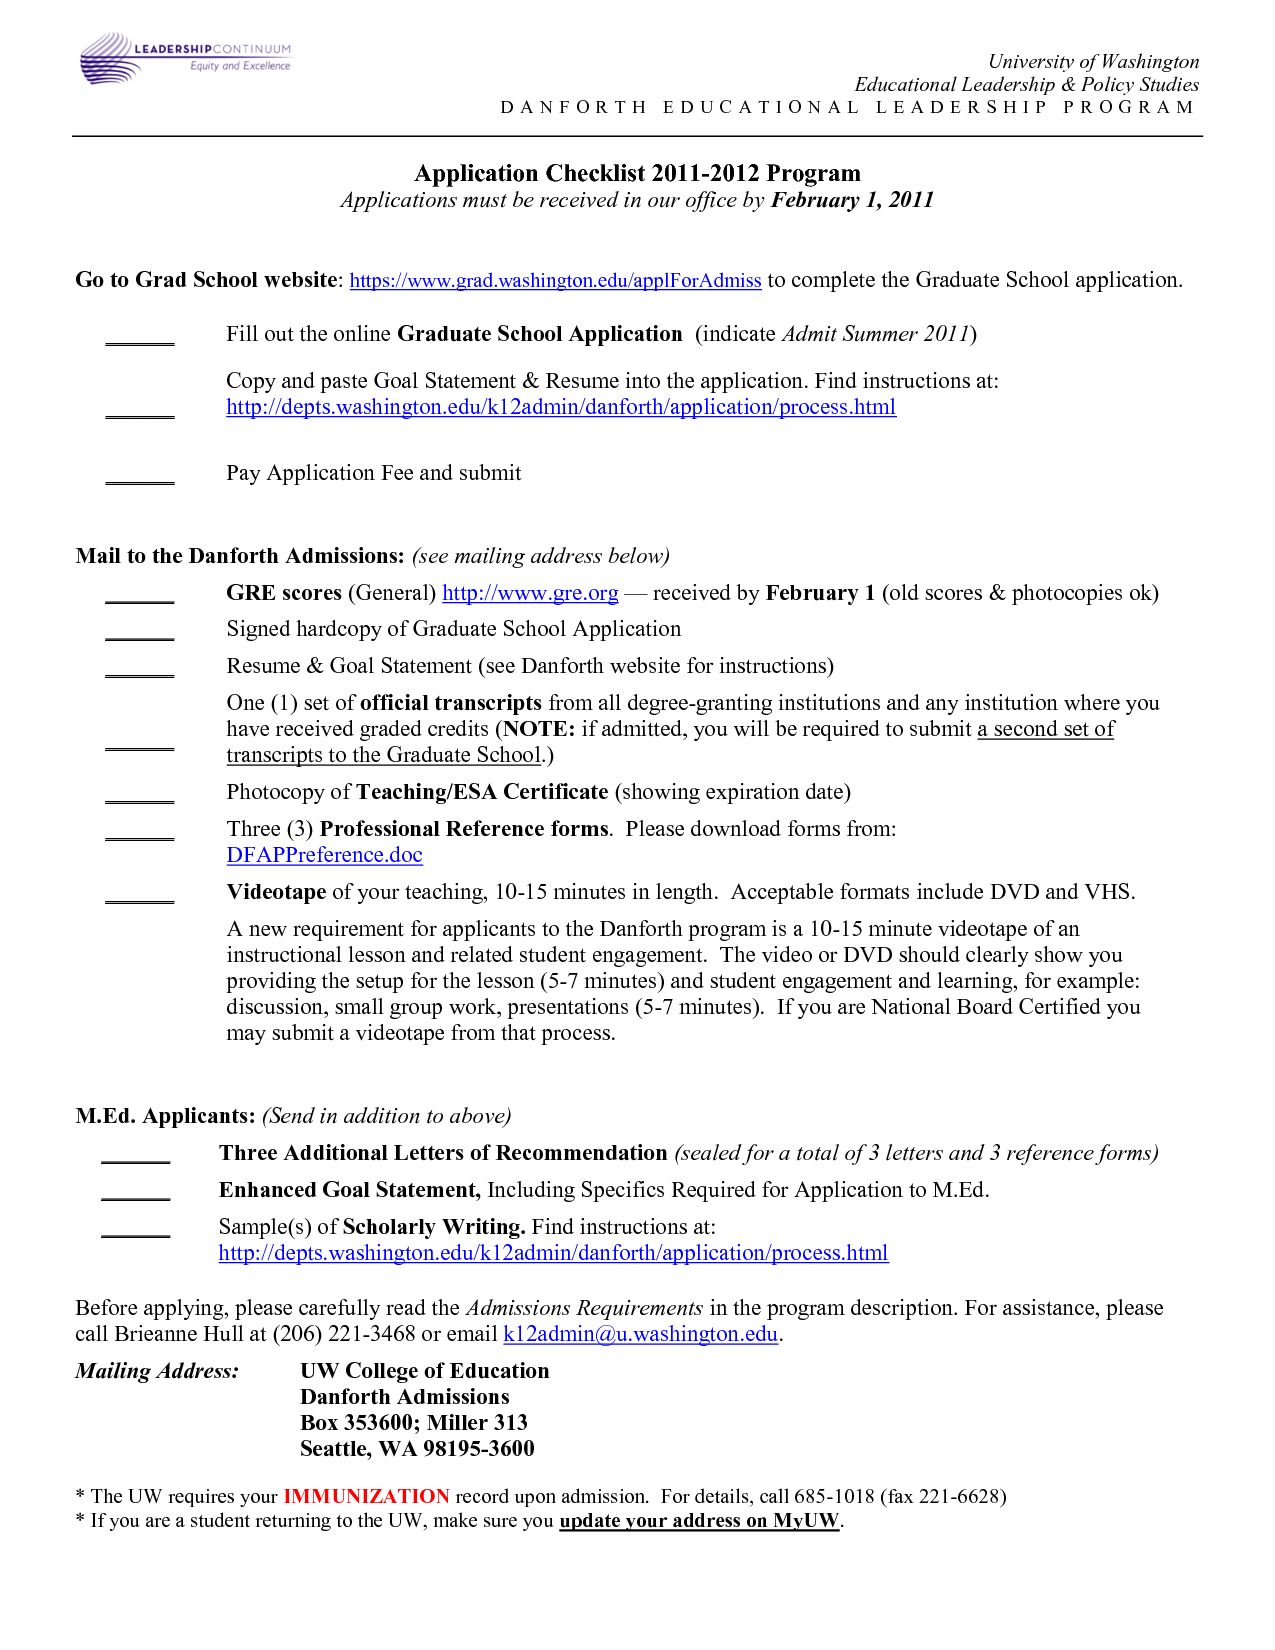 graduate school application resume sample - Sample Resume For Phd Program